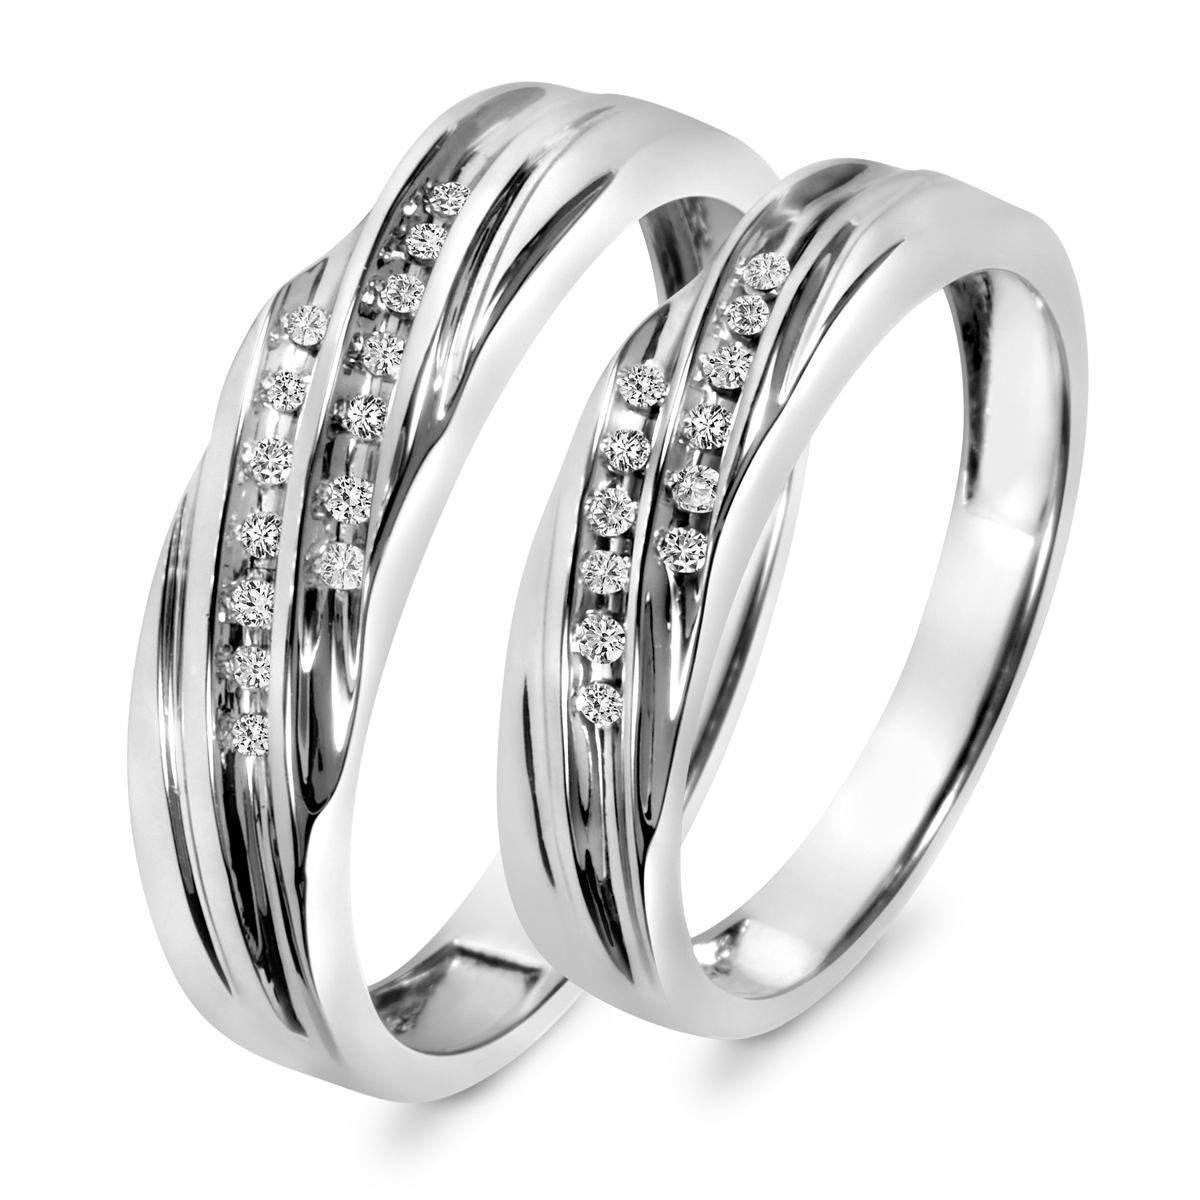 1/7 Carat T.W. Round Cut Diamond His And Hers Wedding Band Set 10K White Gold-